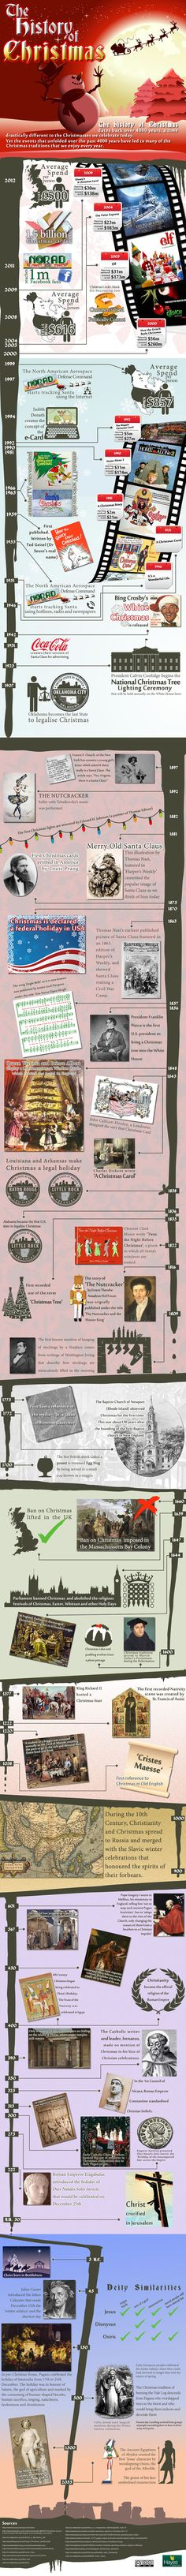 The history of Christmas | #christmas #infographics repinned by @Piktochart http://piktochart.com/12-christmas-infographics/